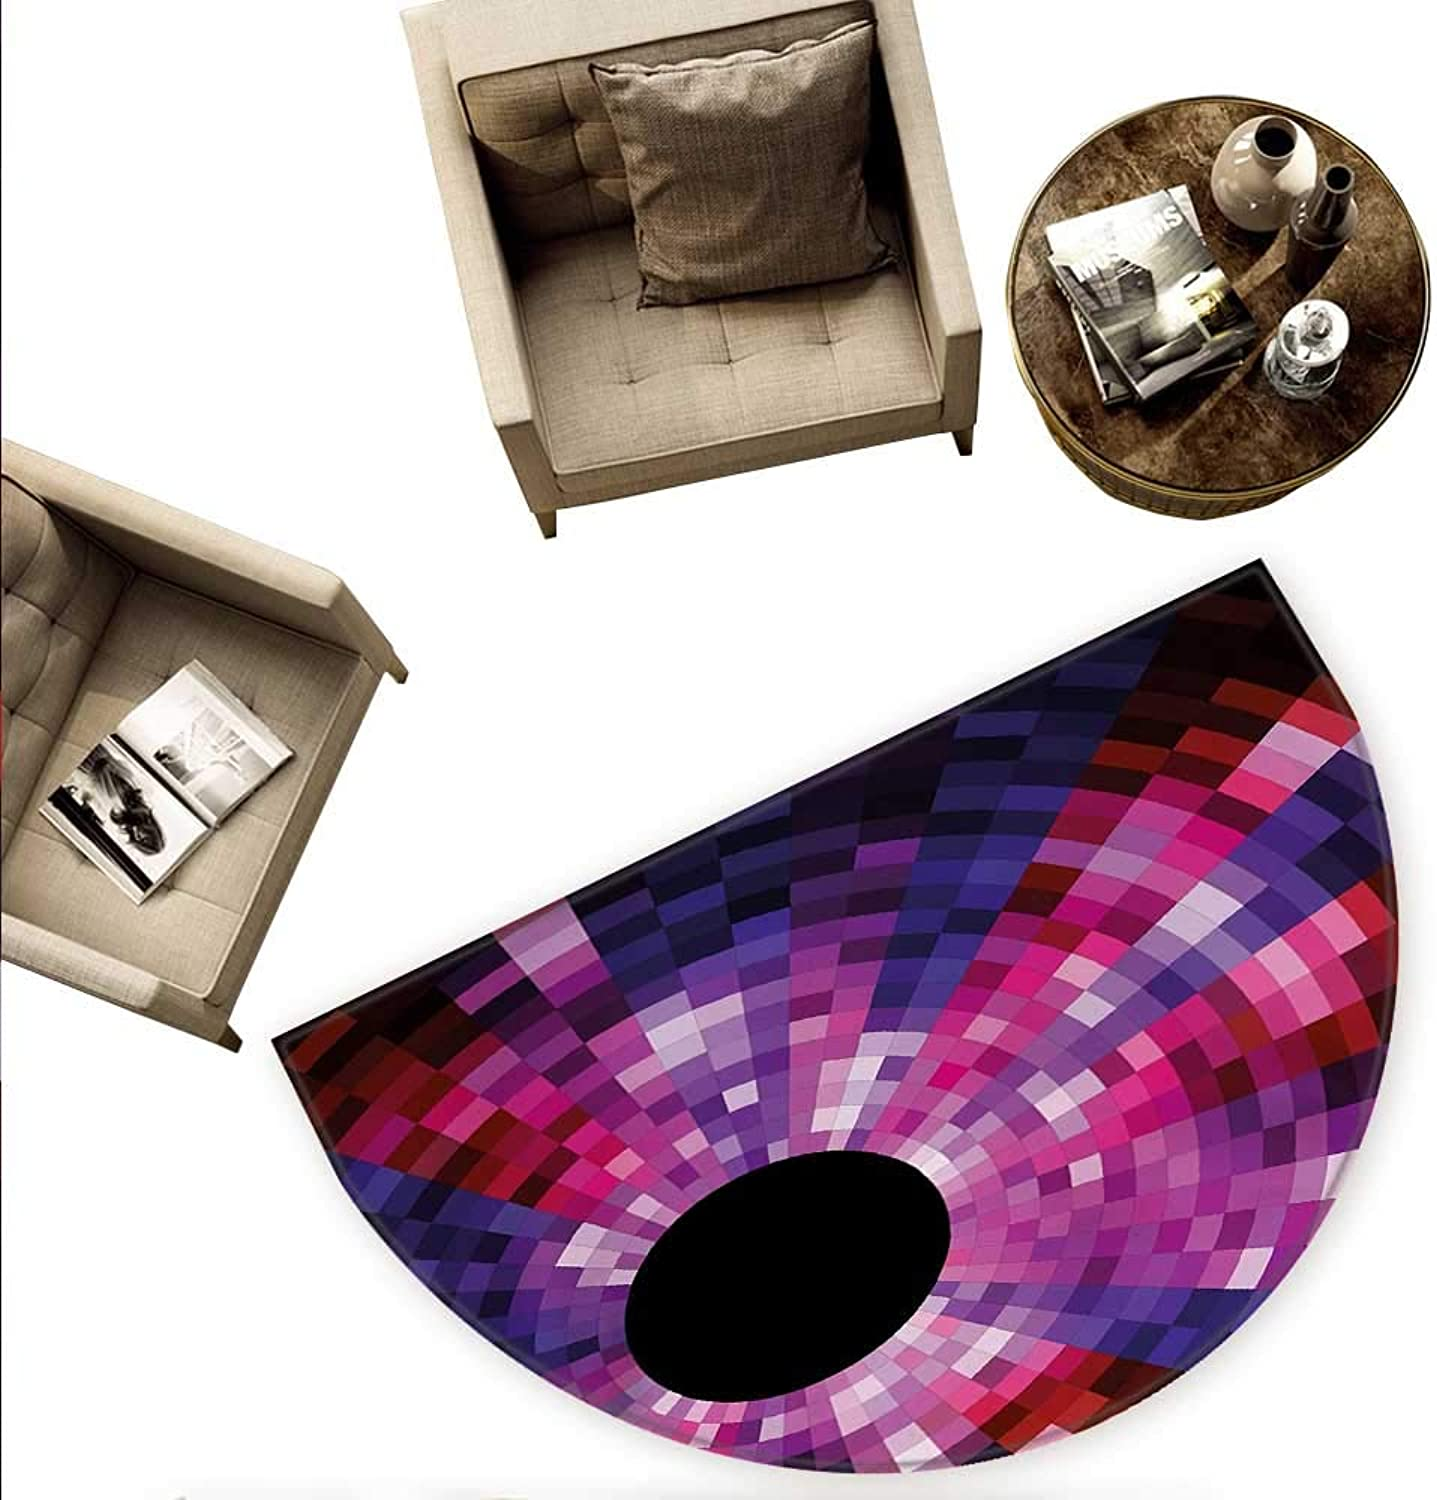 Abstract Semicircular Cushion Mosaic Pattern Design Vibrant colors Tiles Modern Circular Geometric Graphic Entry Door Mat H 63  xD 94.5  Pink Purple Red